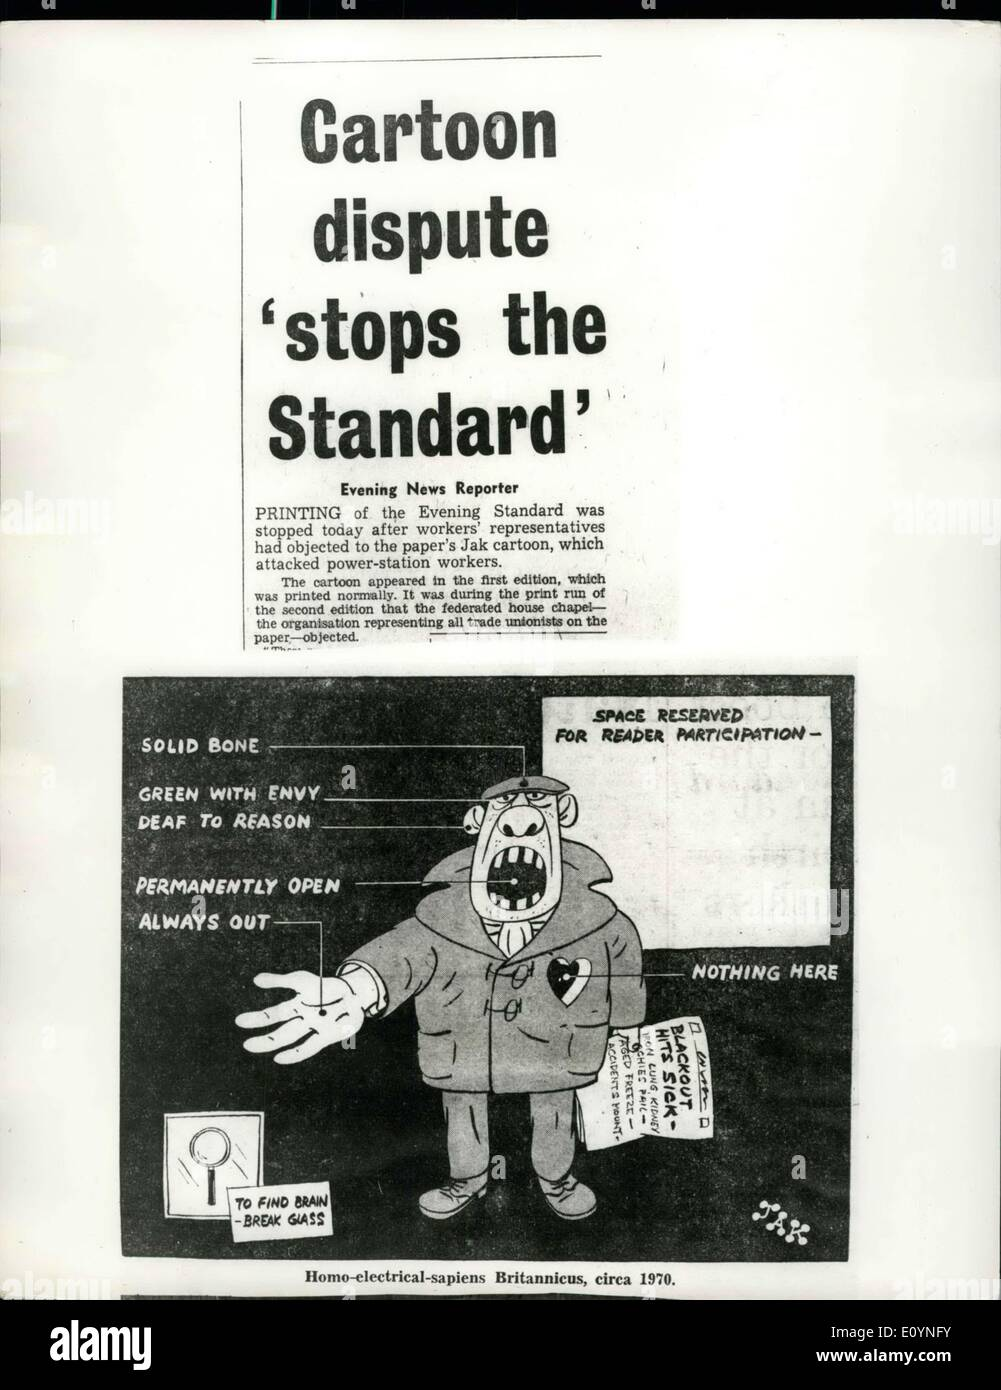 Dec. 09, 1970 - Cartoon dispute ''Stops the Standard''. This is the Jak cartoon which appeared in today's first edition of the Evening Standard. Printing of paper was stopped after workers' representatives had objected tot he cartoon, which attacked power-station workers. It was during the print run of the second edition that the federated house chapel - the organisation representing all trade unionists on the paper - objected. - Stock Image